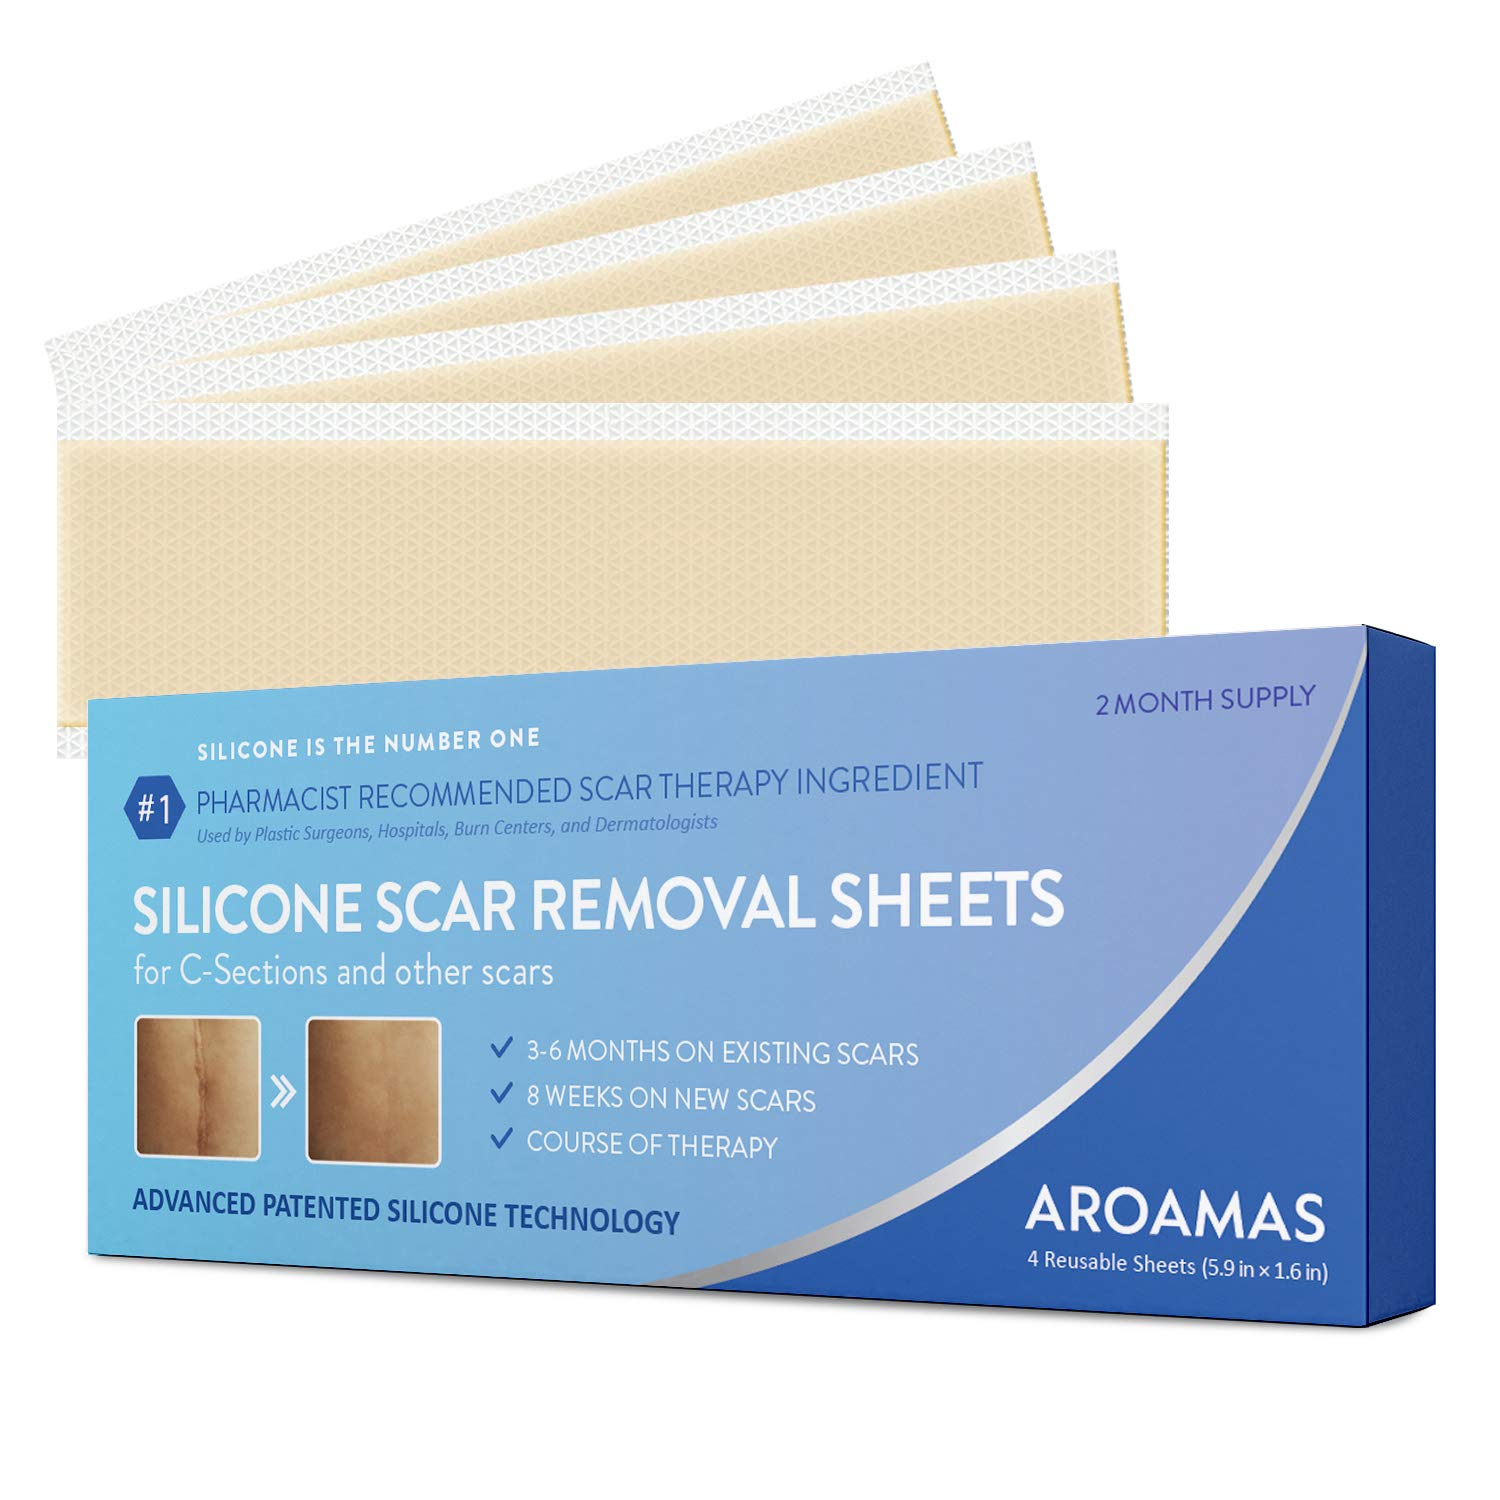 Aroamas Professional Silicone C-Section Scar Removal Sheets